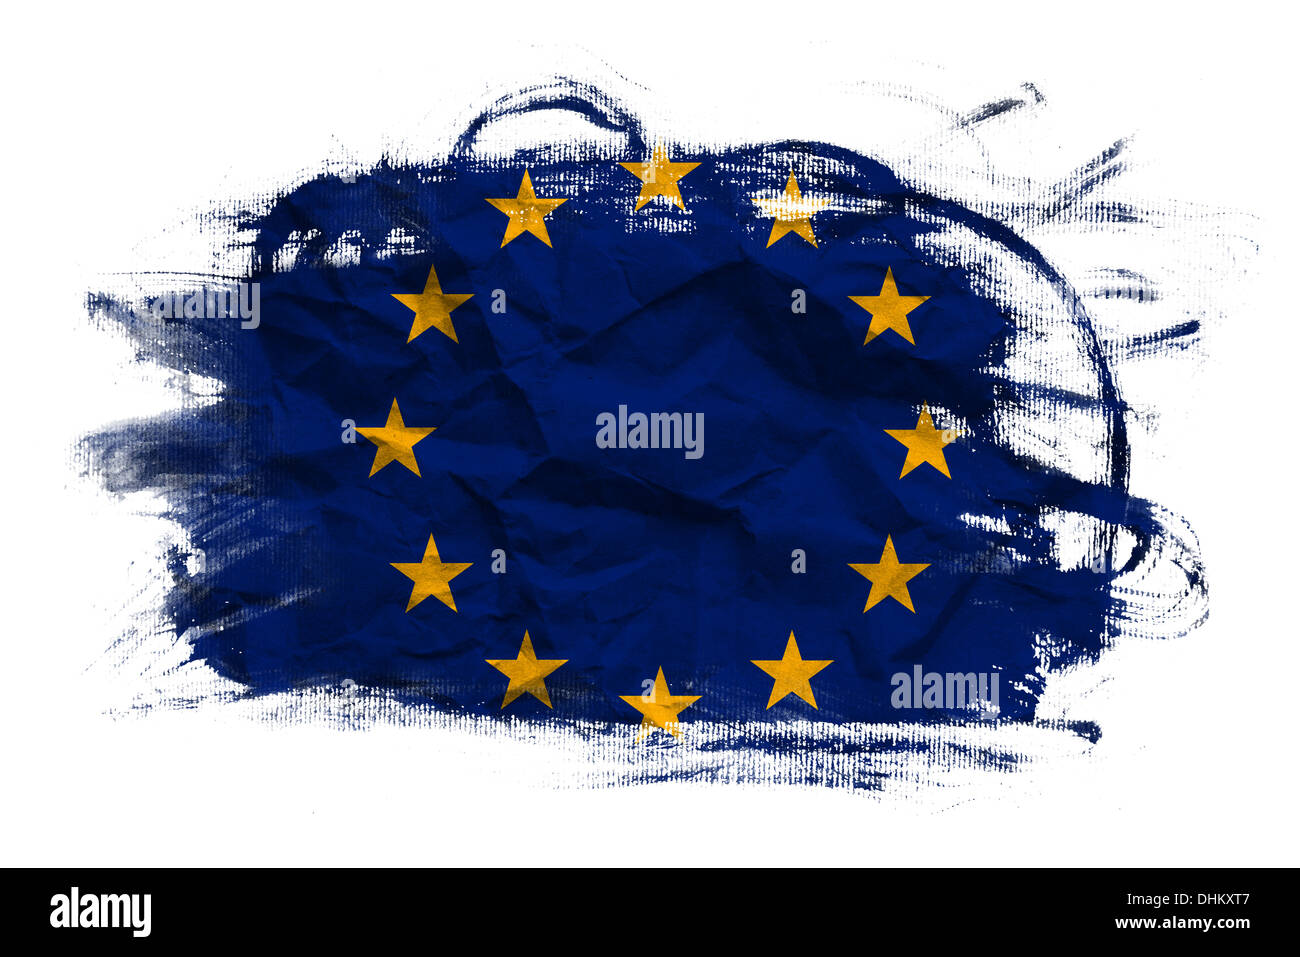 European union flag on Crumpled paper texture. Old recycled paper background. - Stock Image